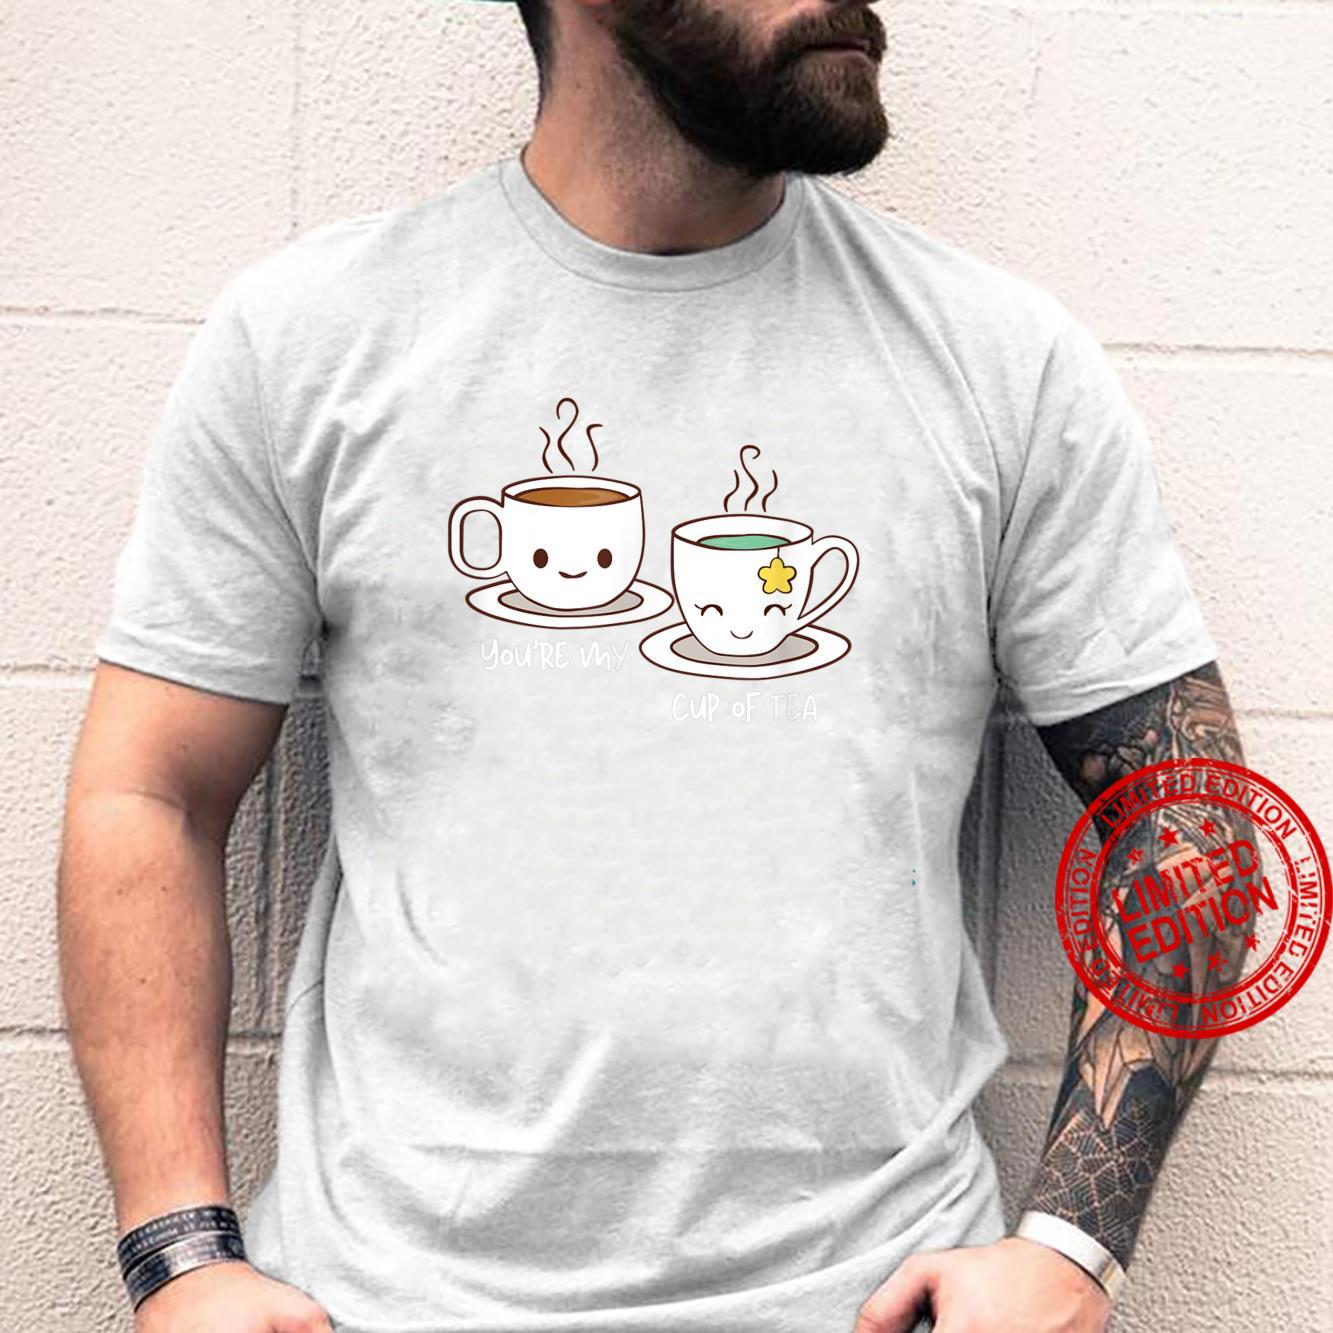 You're My Cup of Tea Shirt